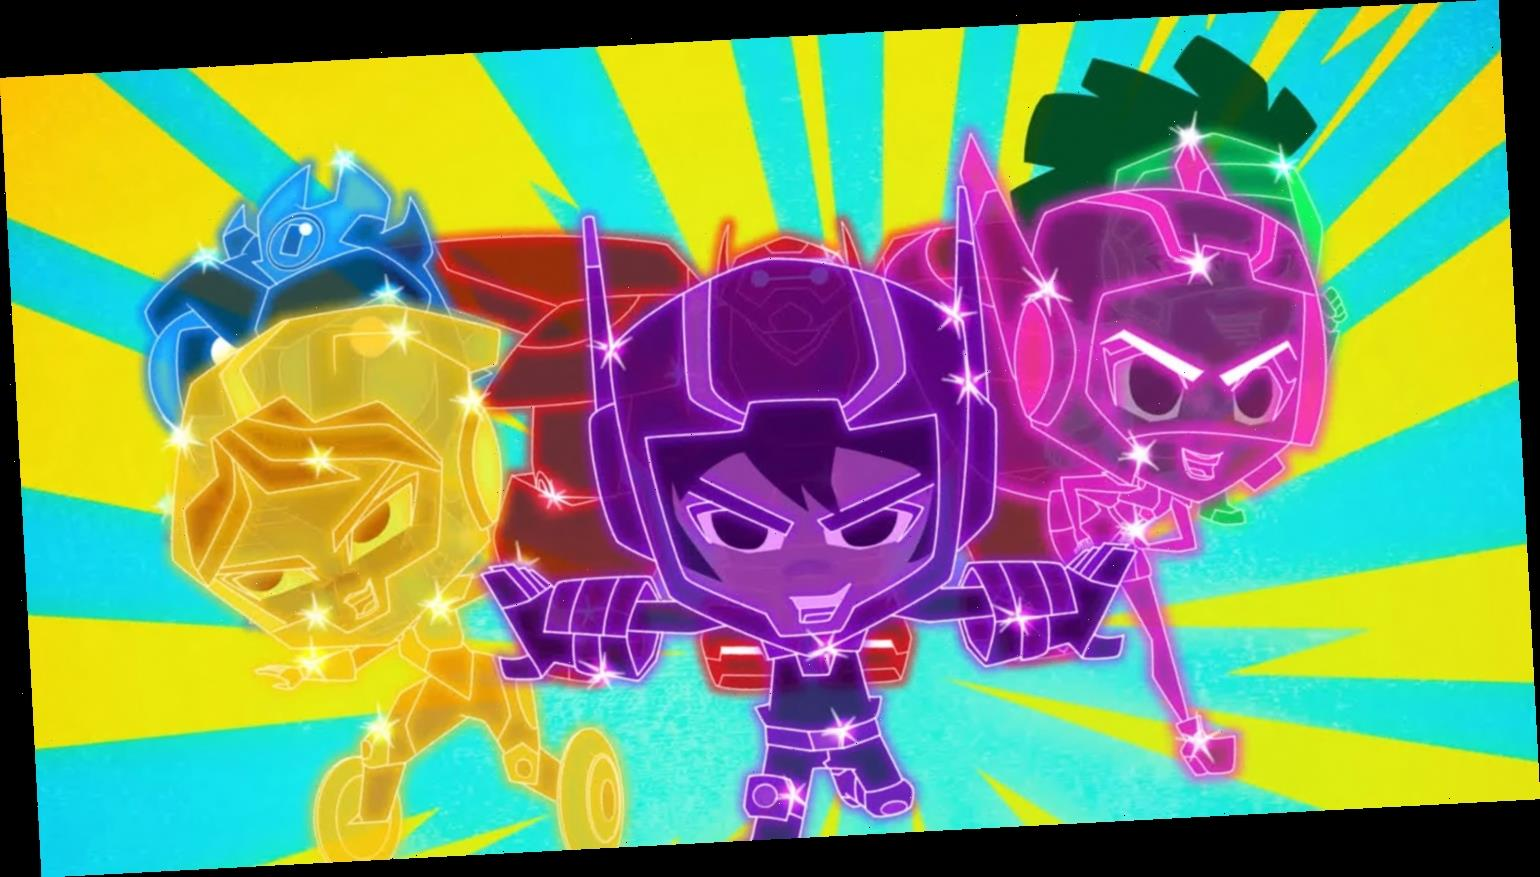 'Big Hero 6 The Series' Debuts New Clip of Evil Chibi Versions of the Team at NYCC